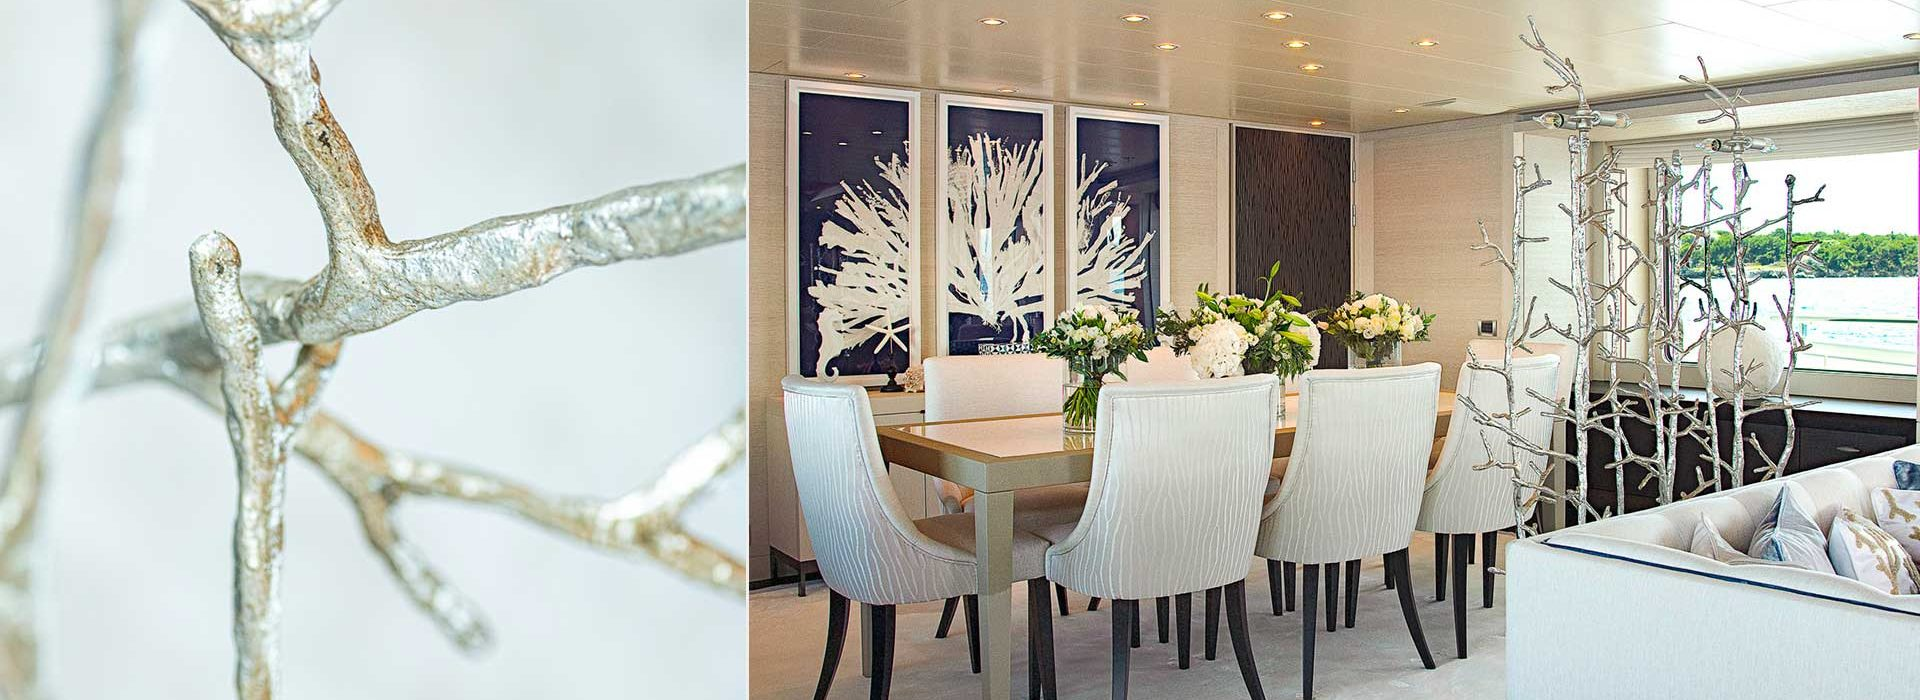 YACHT-REFIT-AMELS-LIMITED-EDITION-06-Dome-interior-design-Geneve-Suisse